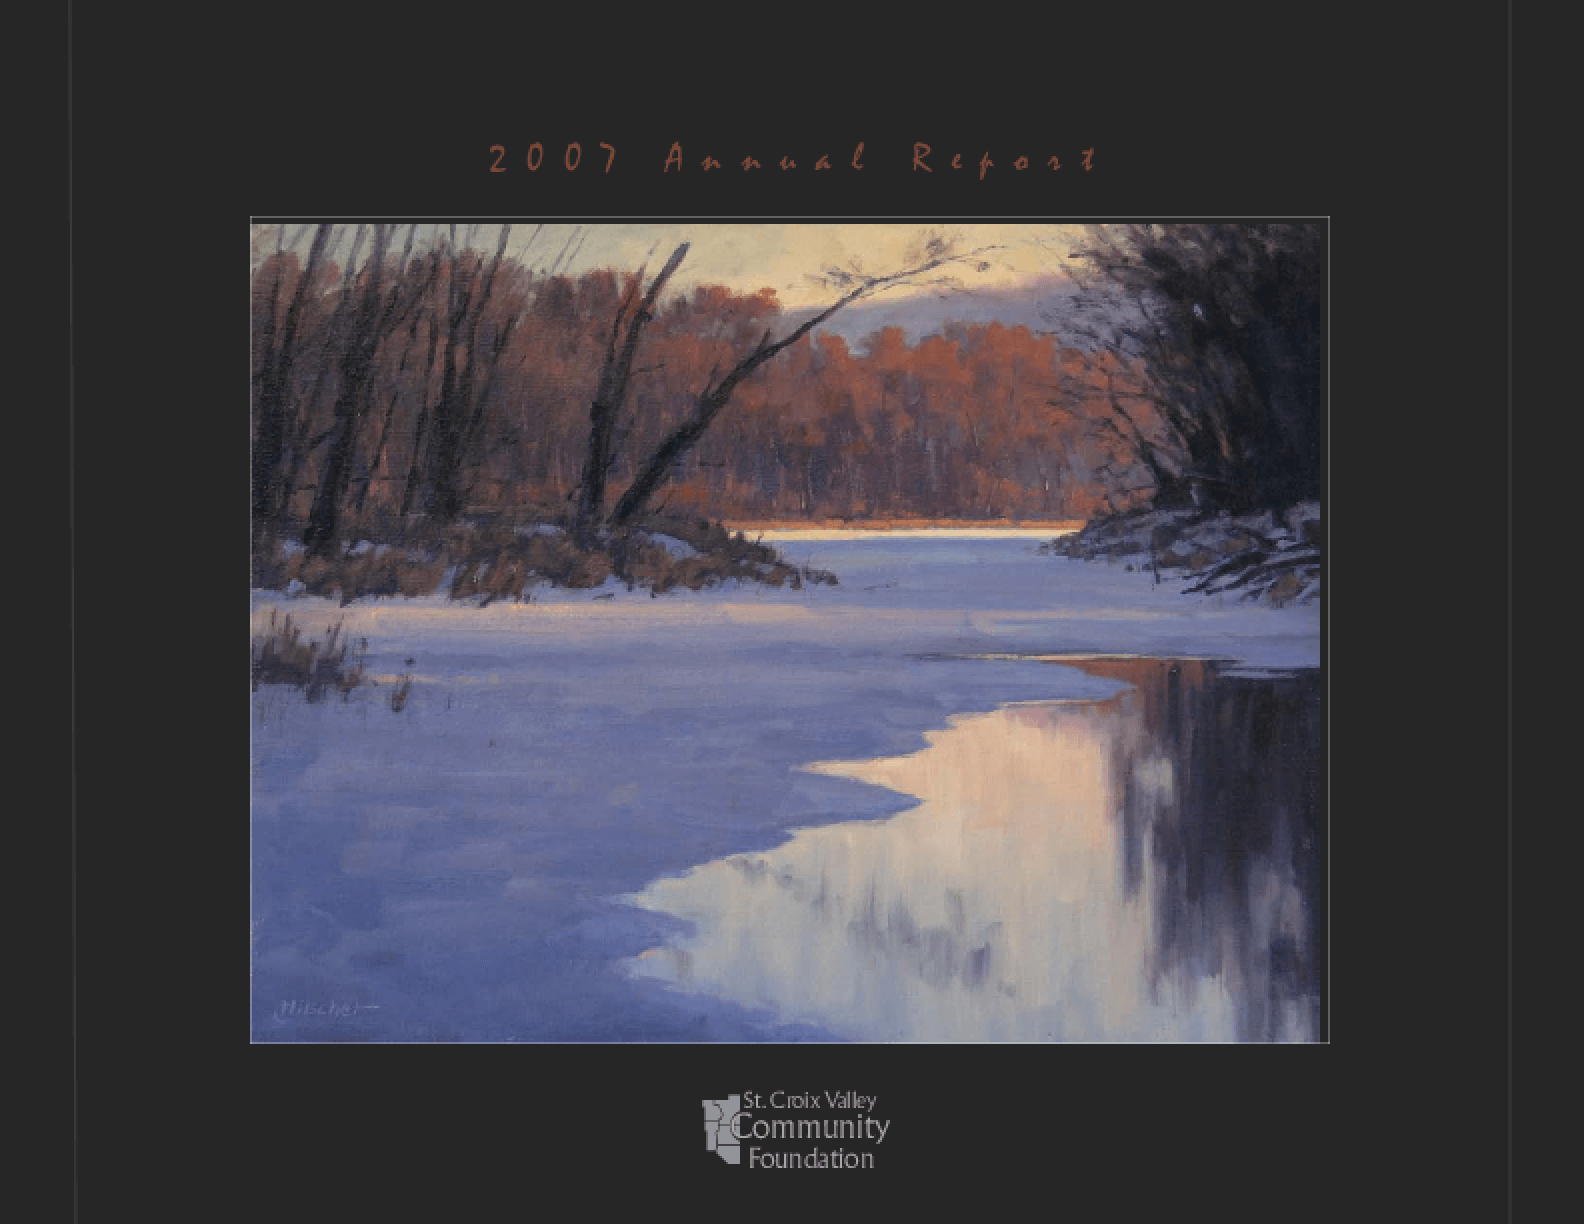 St. Croix Valley Community Foundation - 2007 Annual Report